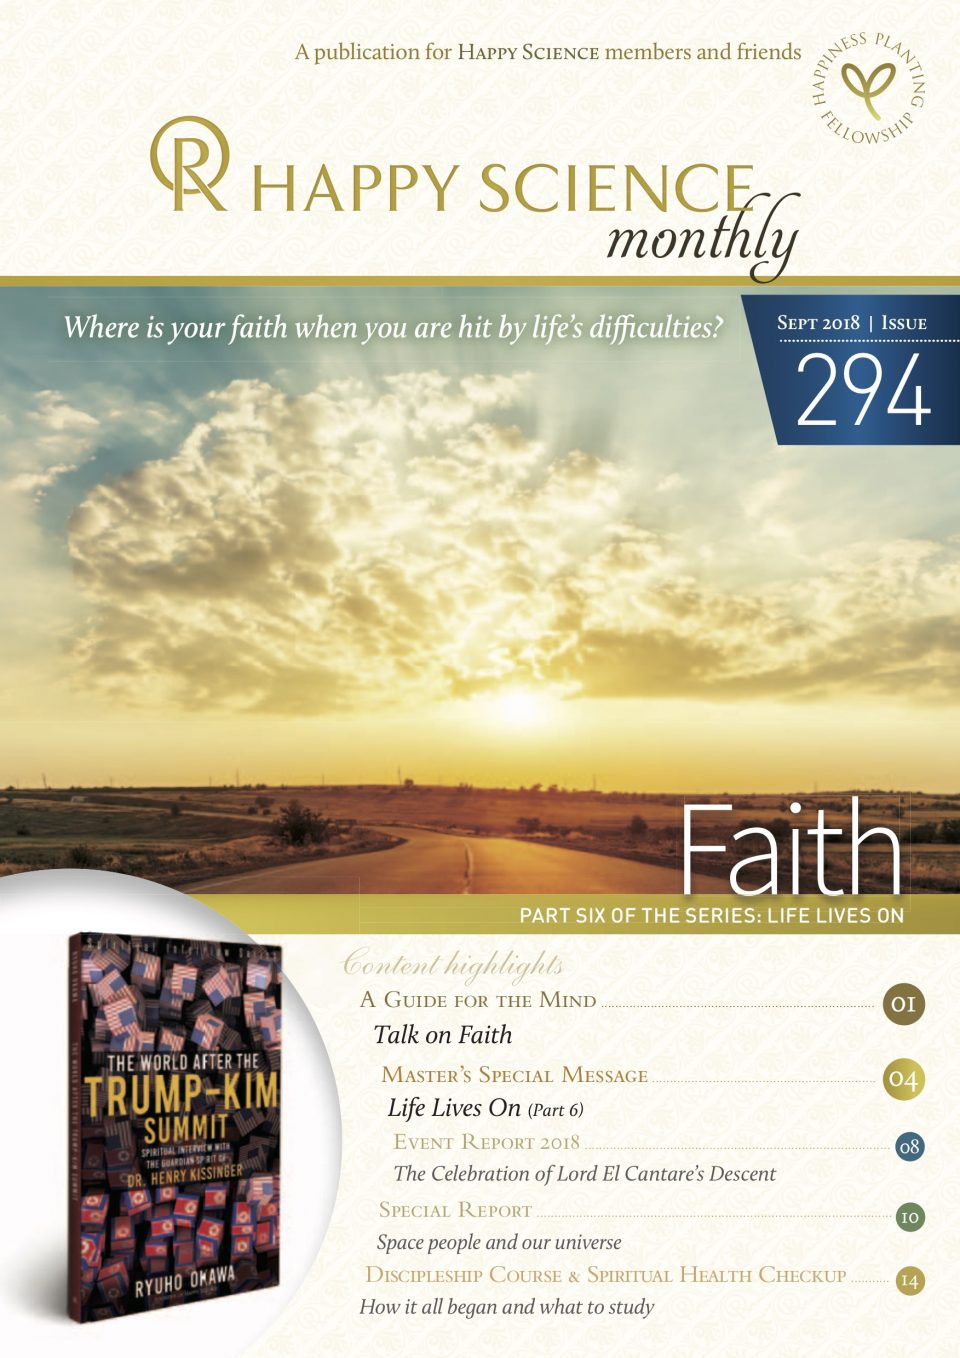 HAPPY SCIENCE Monthly 294 is released!